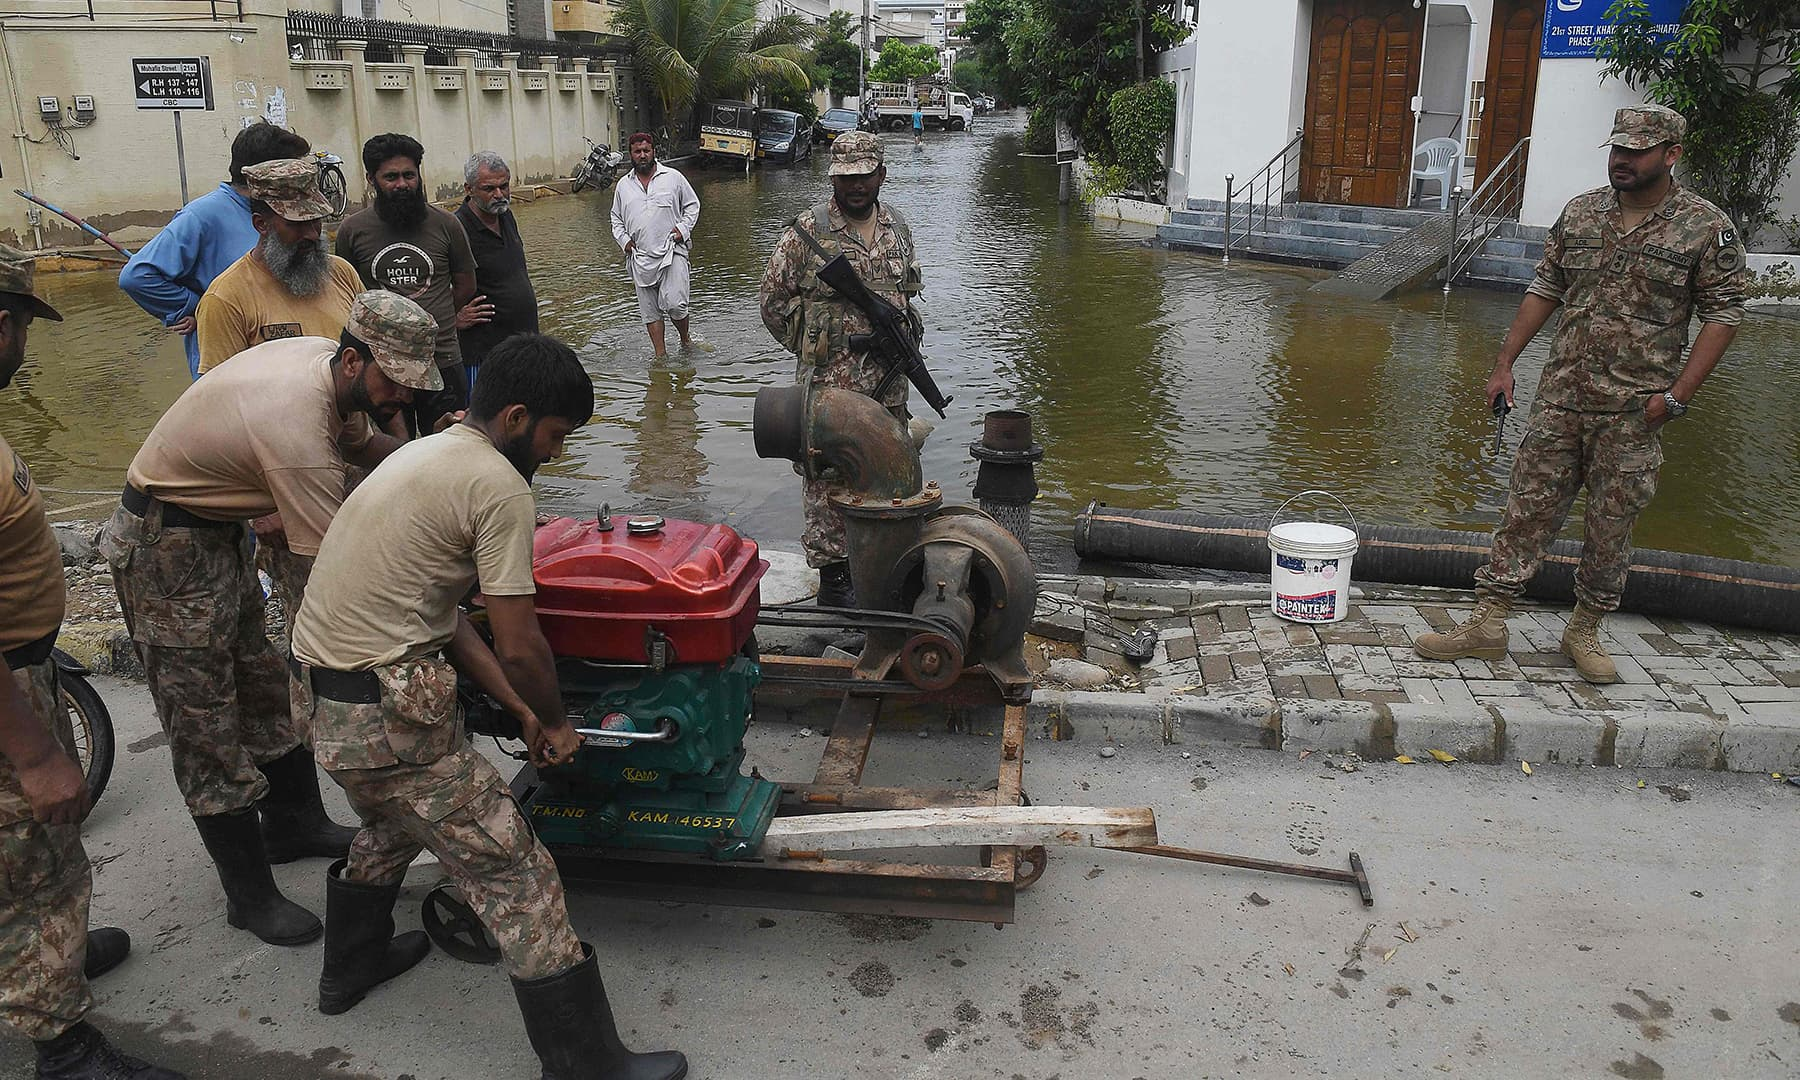 Troops install a water pump to remove water from a flooded residential area following heavy monsoon rains in Karachi on August 31. — AFP